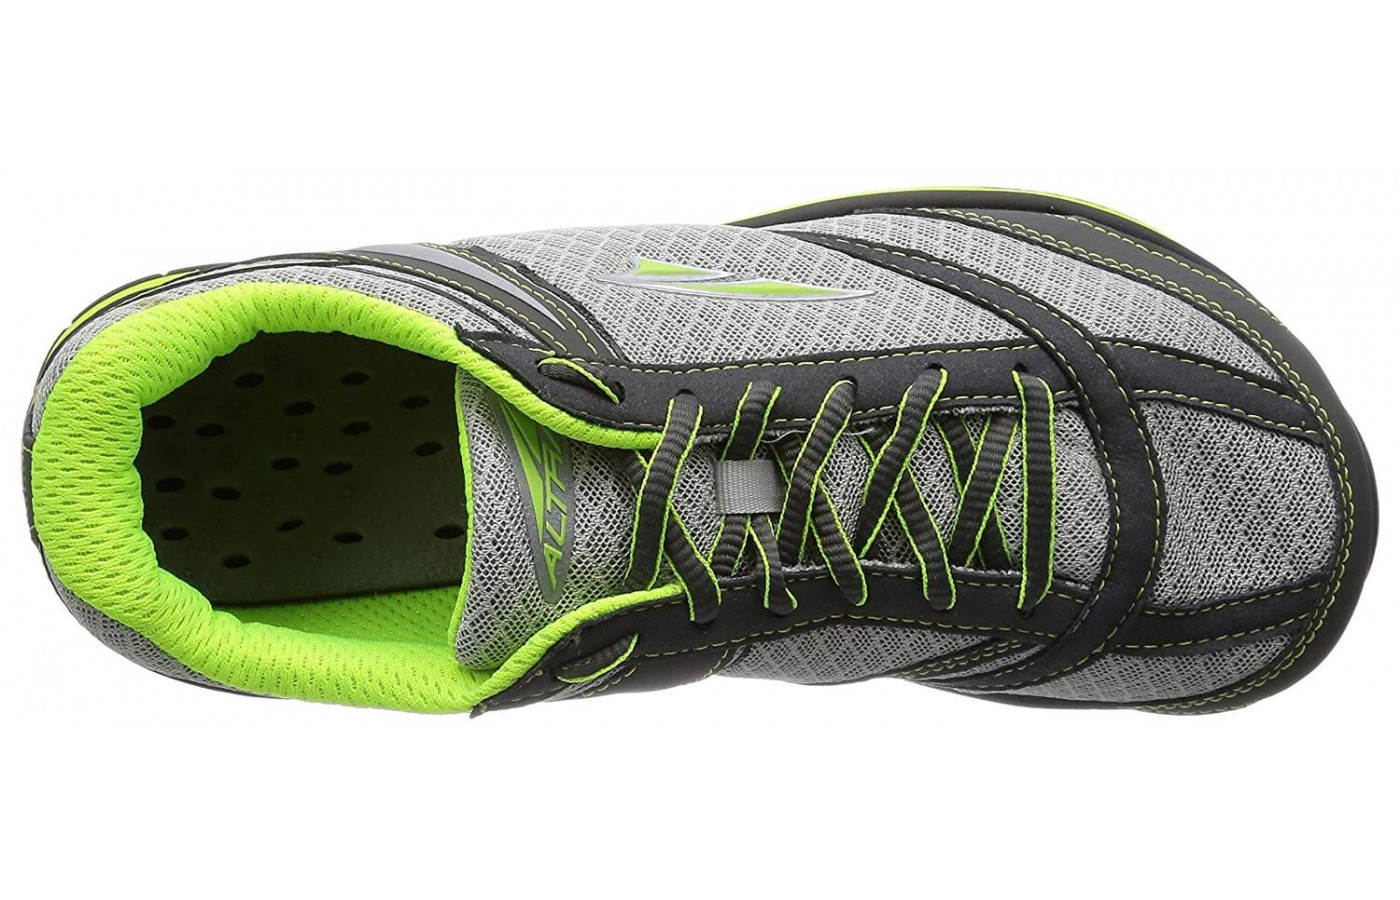 The Altra Provision has a breathable mesh upper